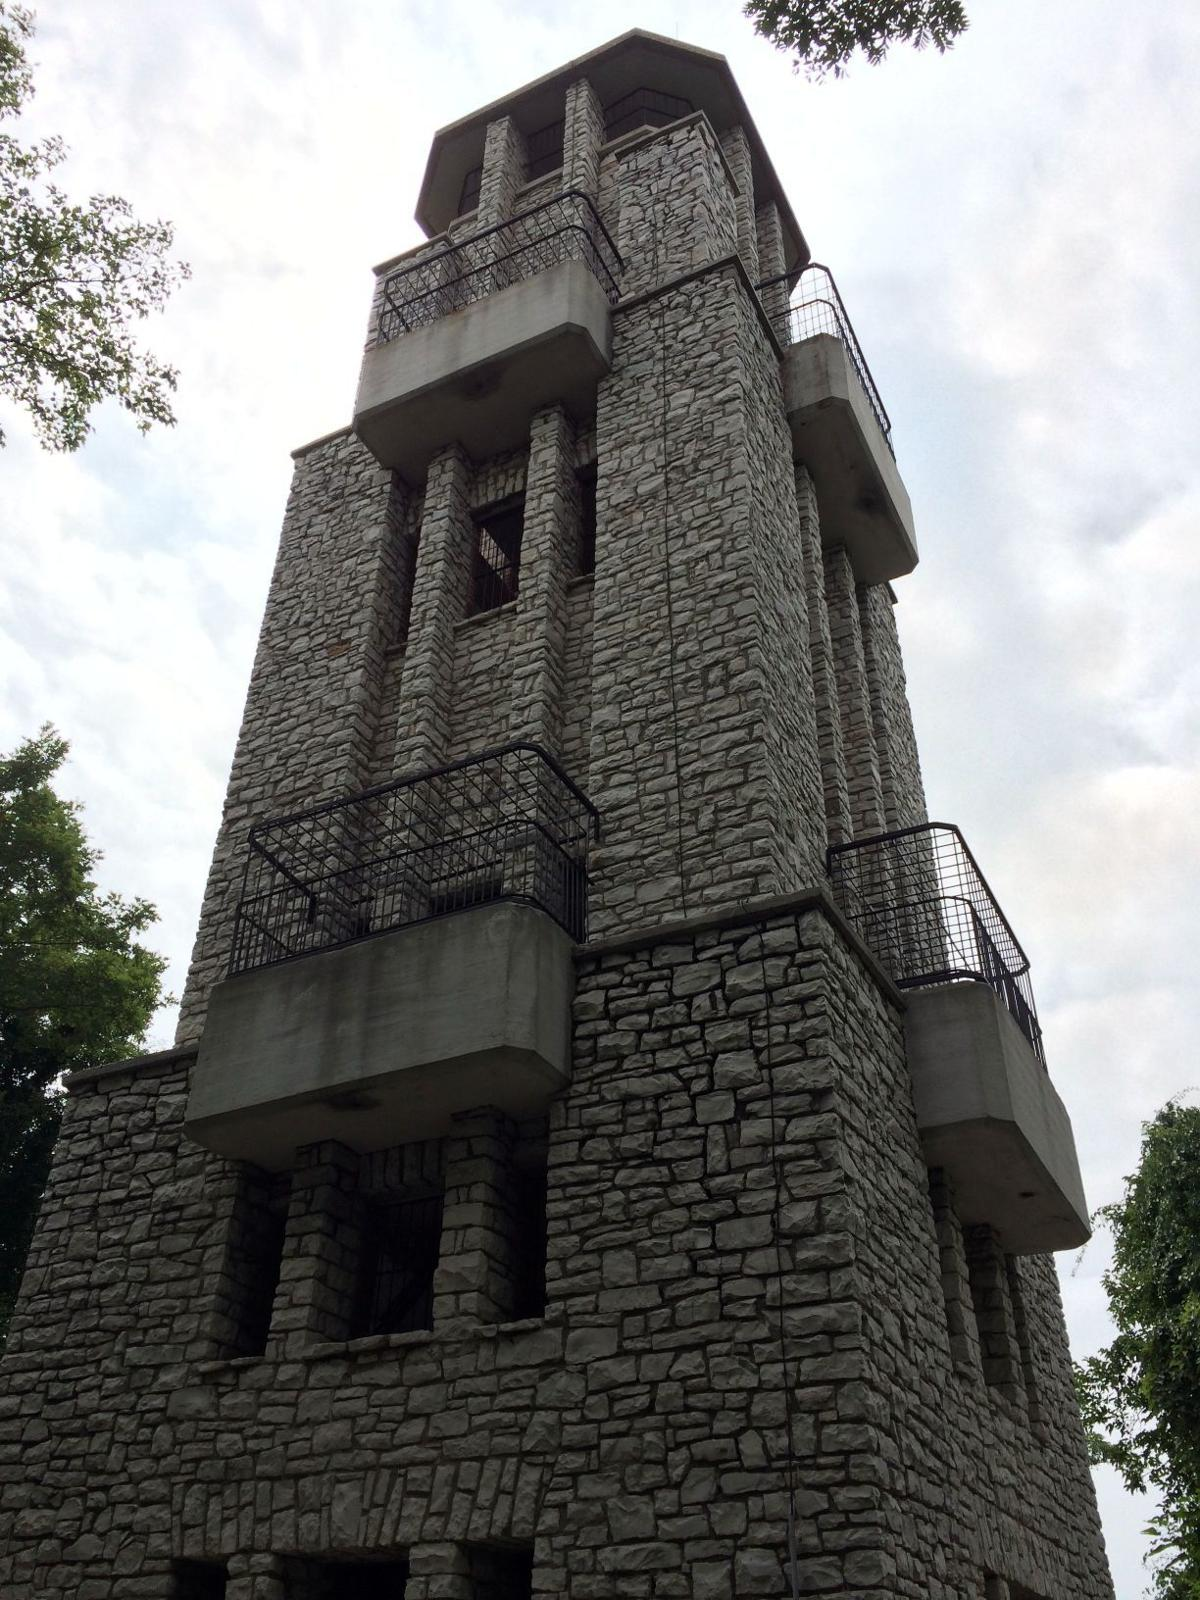 Gallery Washington Park Zoo Observation Tower Digital Exclusives Photo Galleries Nwitimes Com